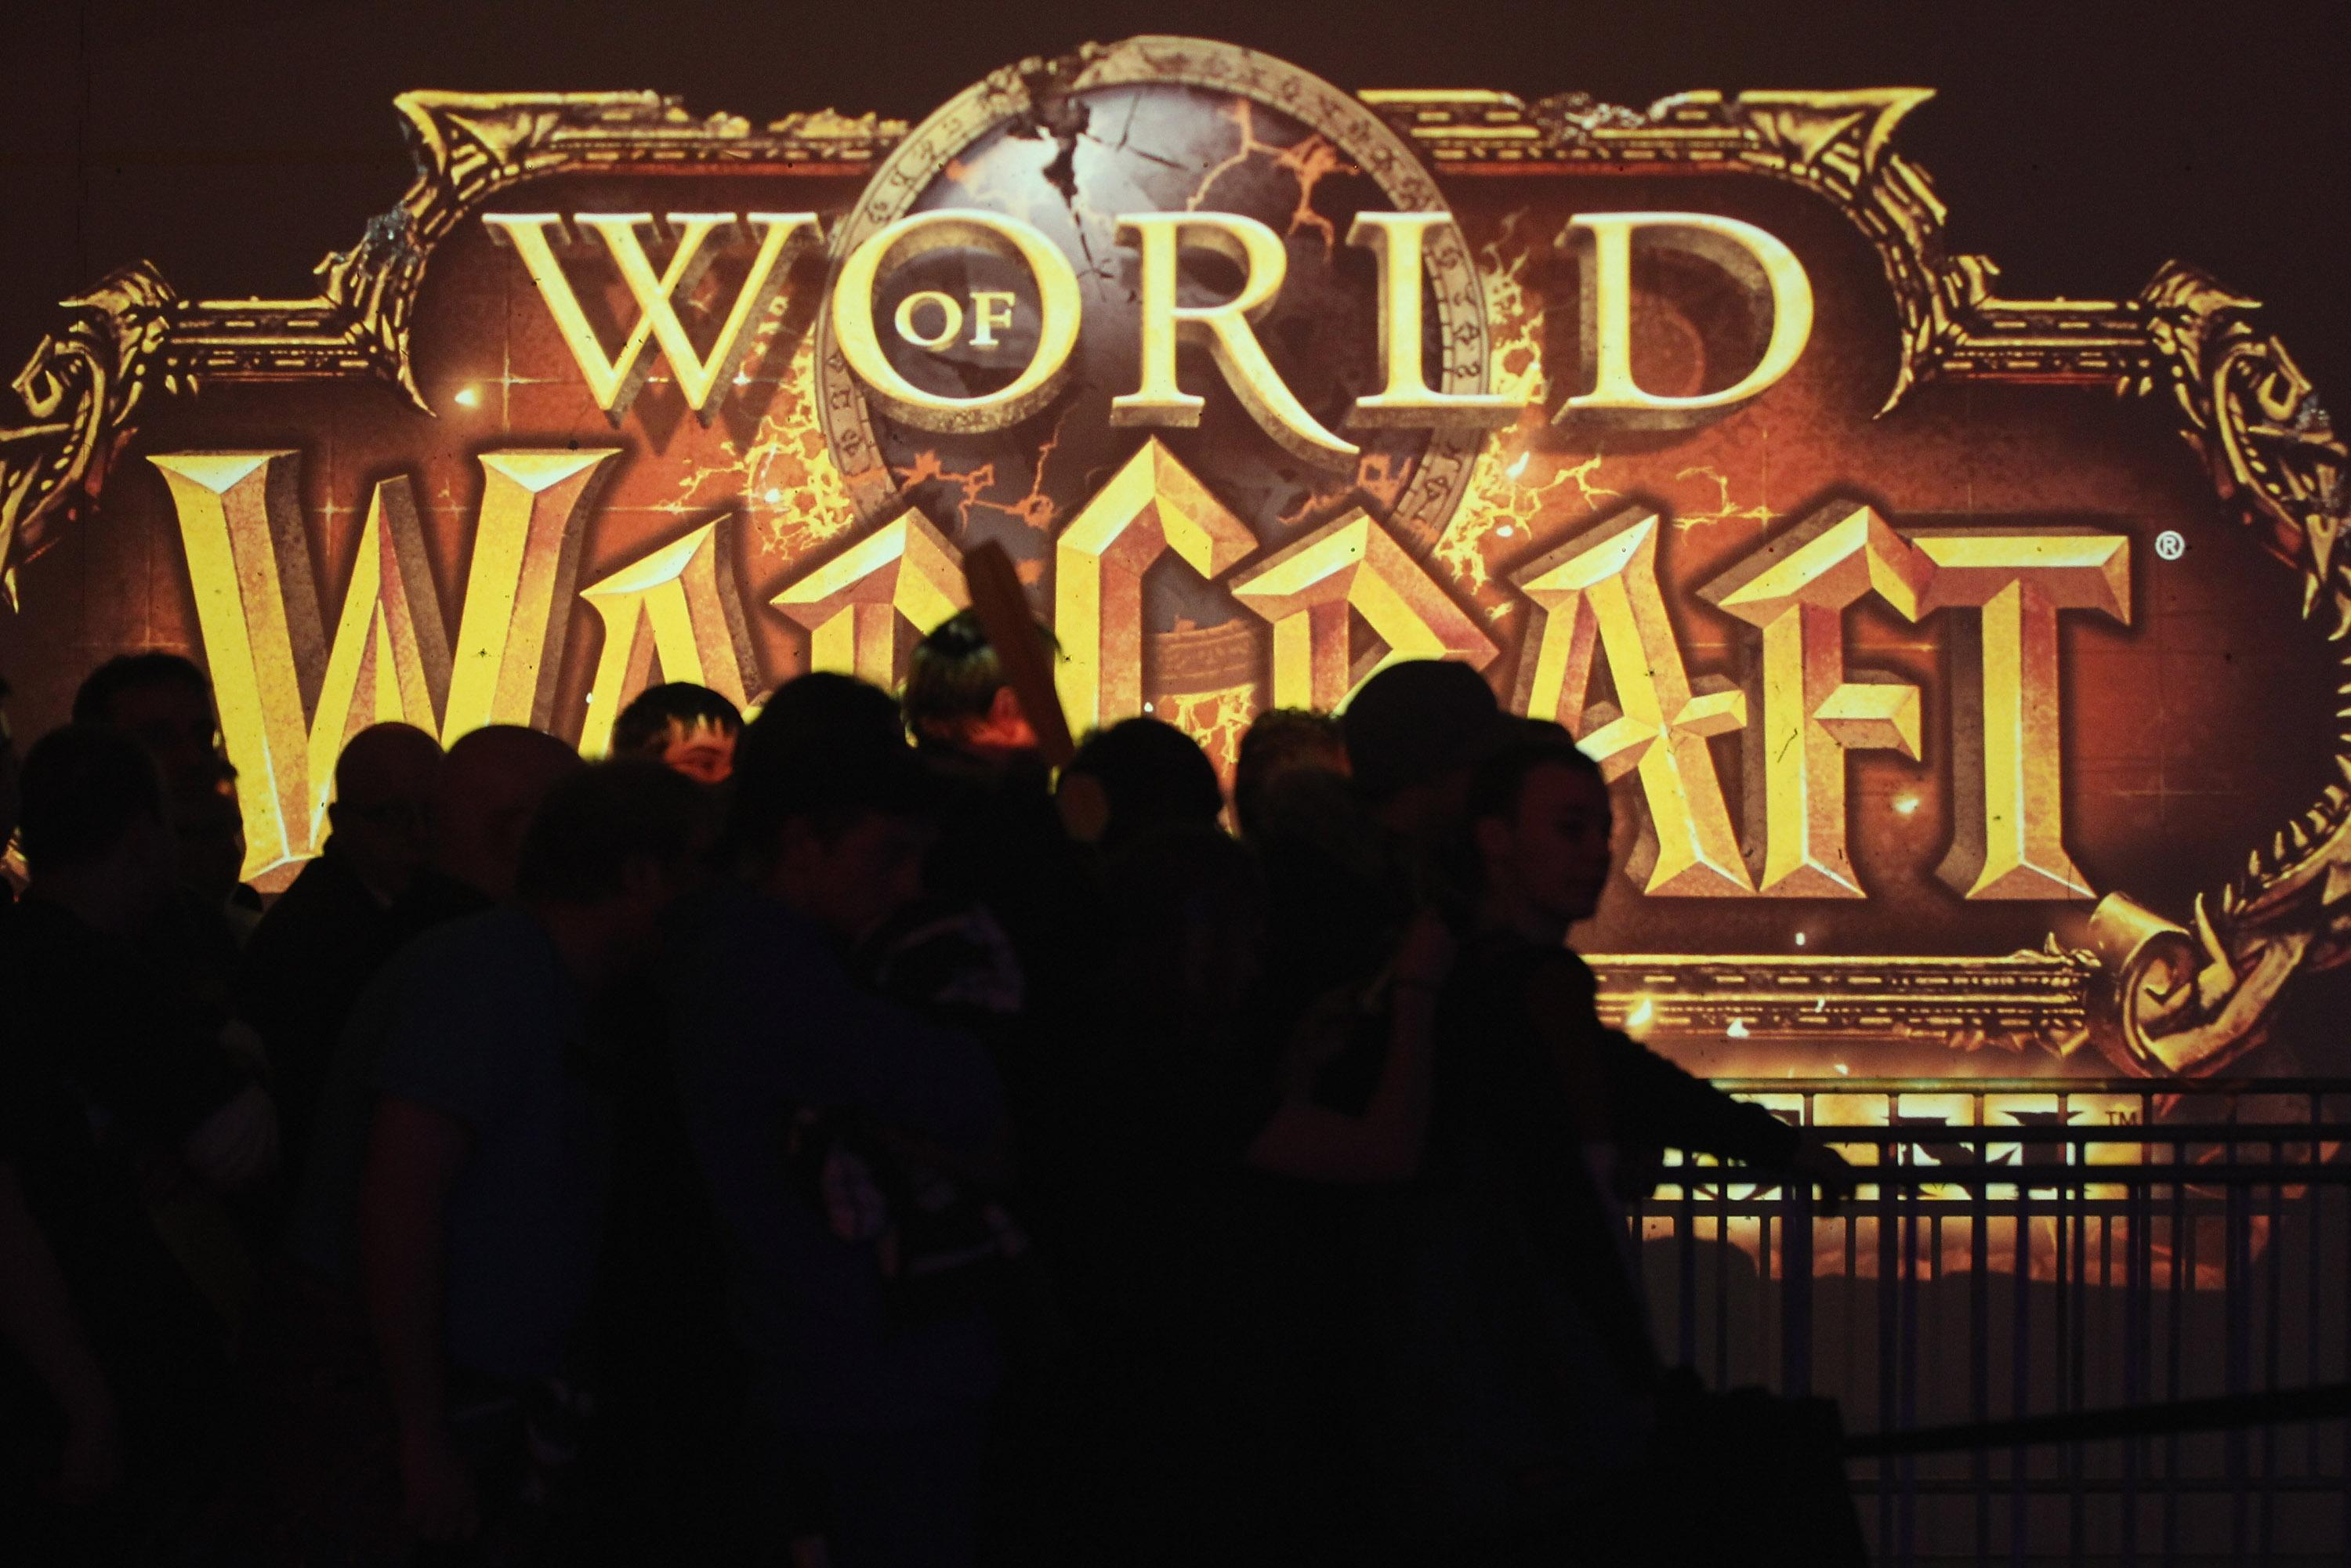 Man sentenced to prison over 2010 World of Warcraft DDoS attack